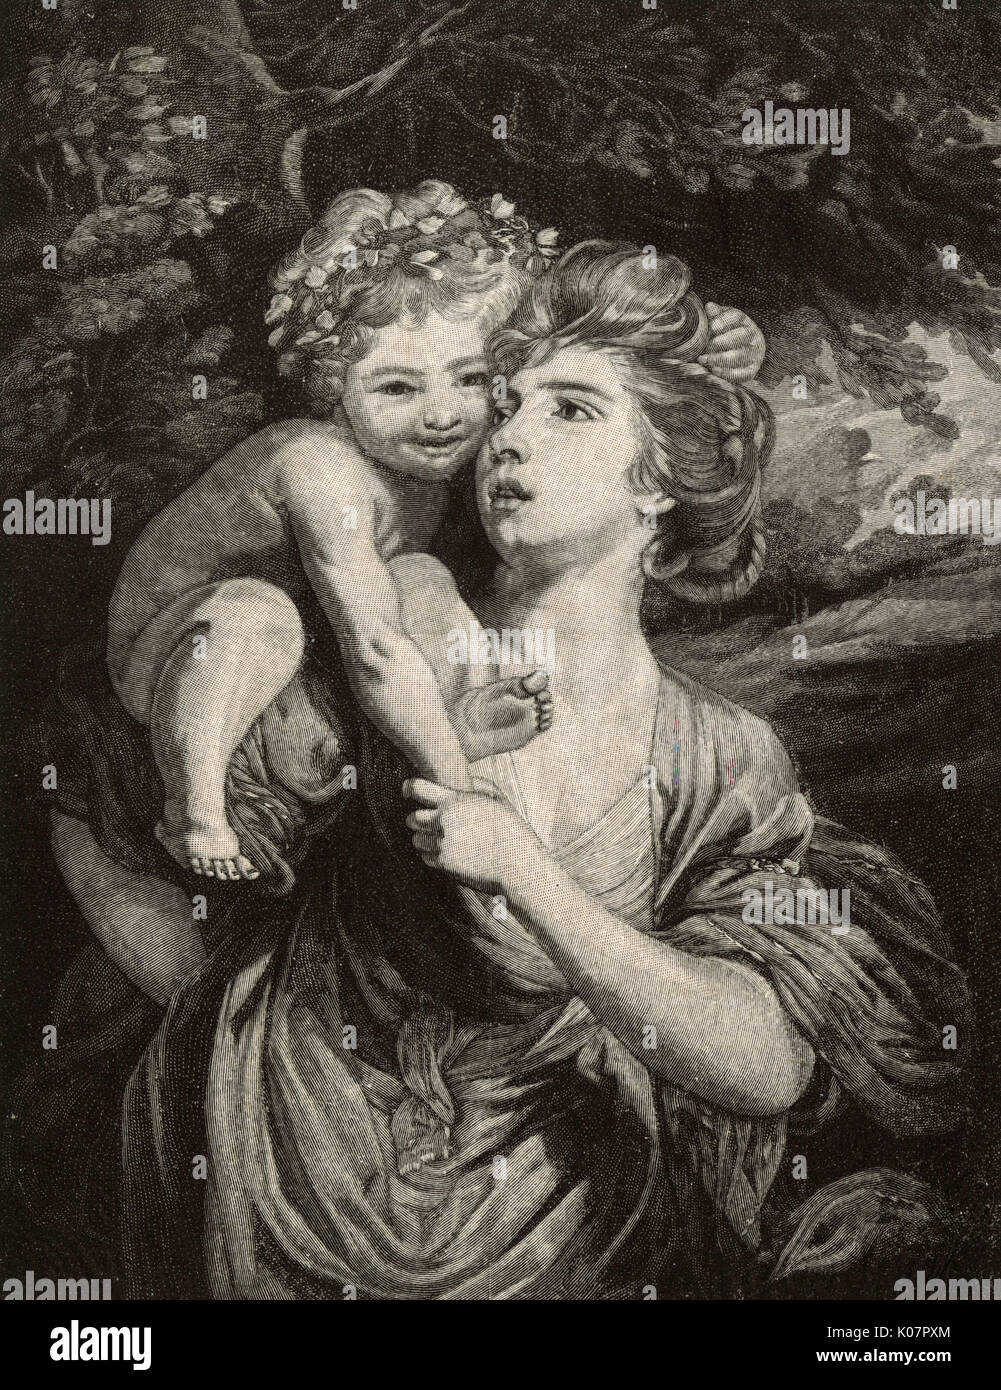 'Mrs Hartley, with her child as a Youthful Bacchanal' by Sir Joshua Reynolds (1723-1792), engraved by Octave Lacour (1855-1921).     Date: 1884 - Stock Image